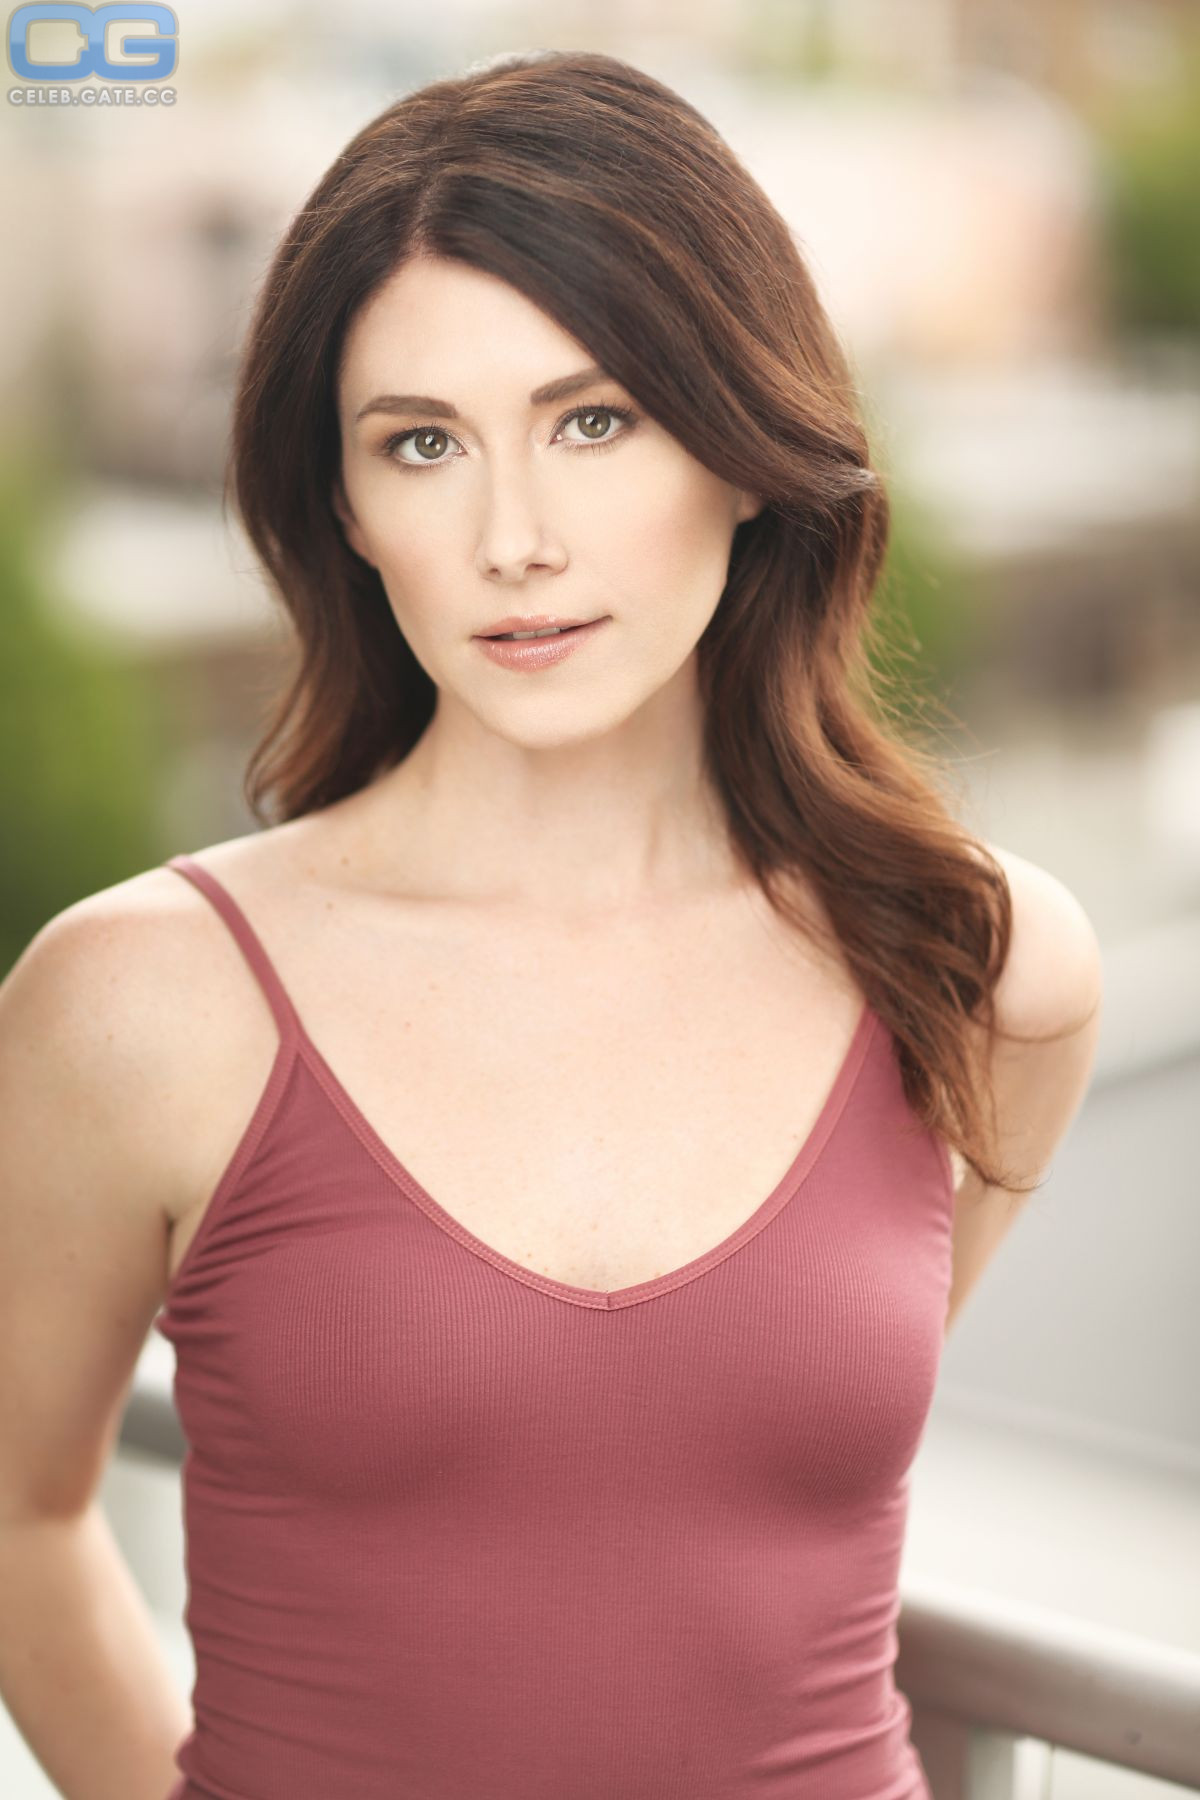 Jewel Staite Fappening photo 21